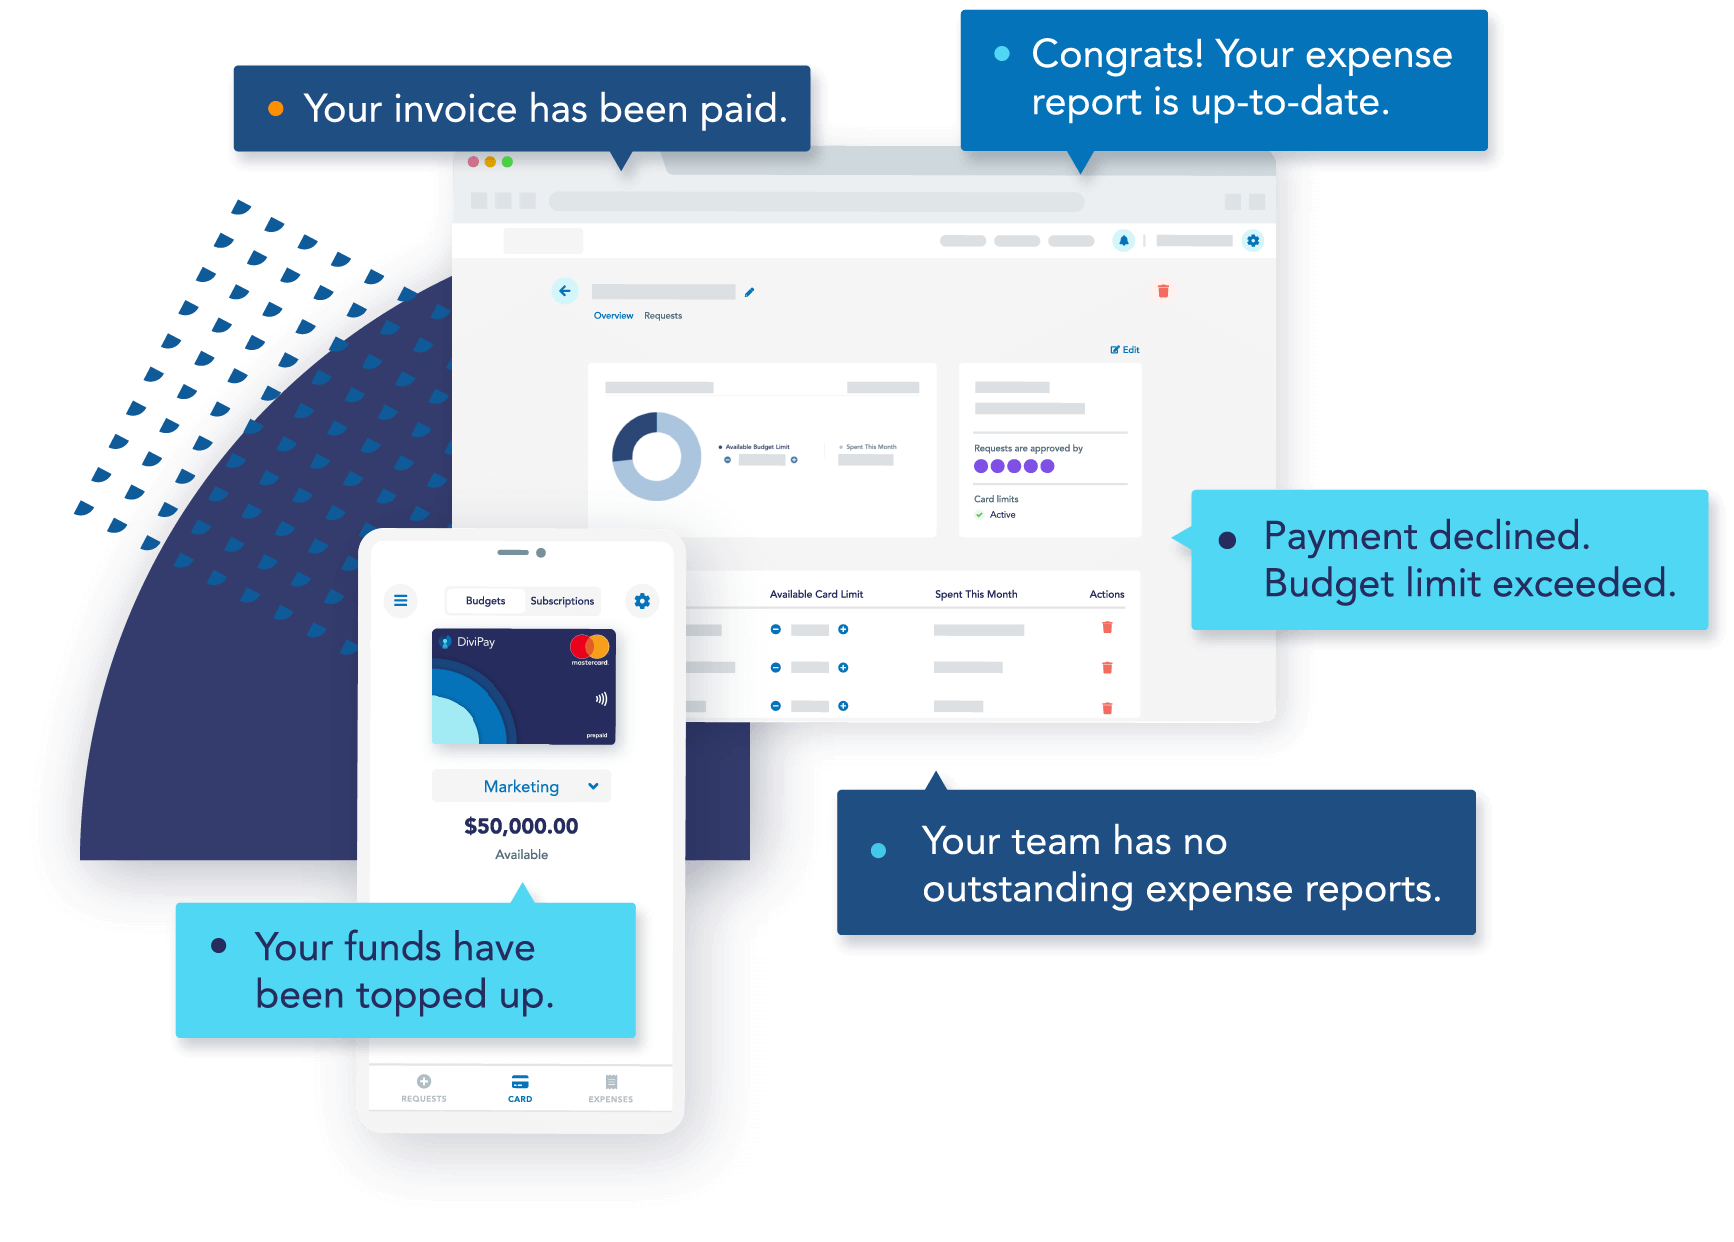 DiviPay's all-in-one spend management platform